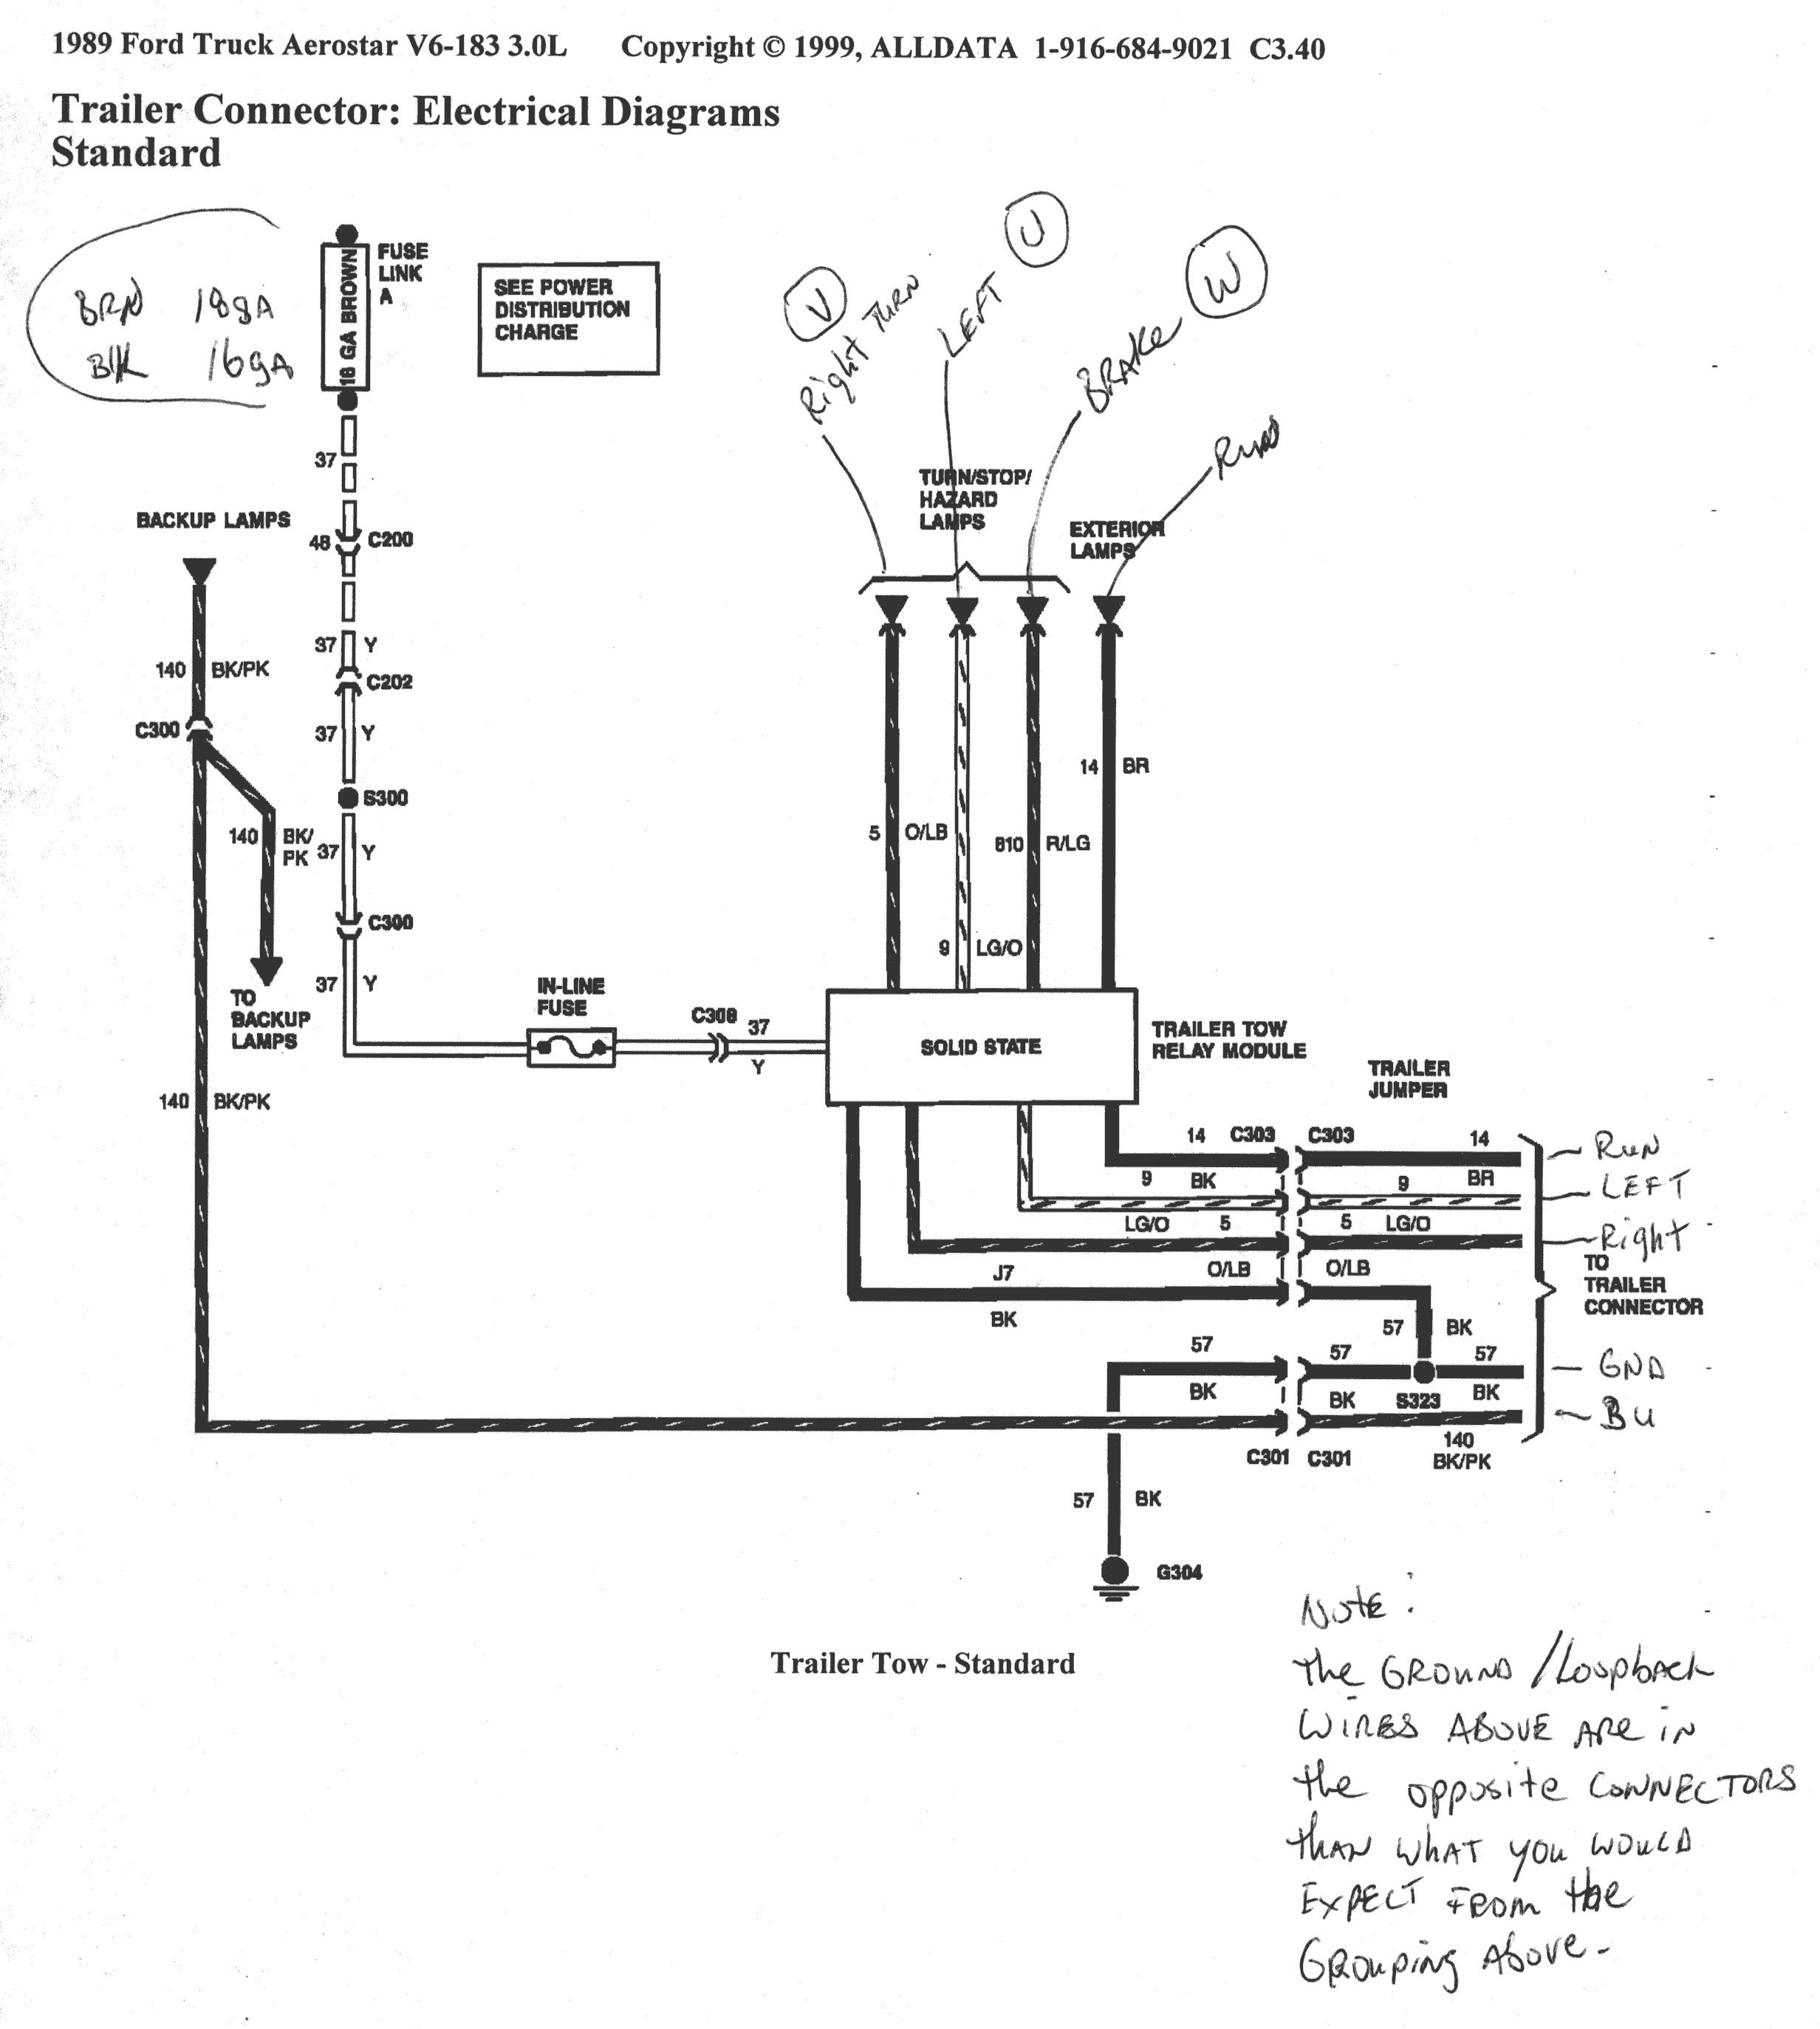 2005 Ford F350 Ke Light Wiring Diagram | Wiring Diagram Ke Light Wiring Diagram Ford F on ford f150 wiring harness, ford f150 belt routing, ford f150 alternator fuse, ford f150 screw, ford f150 rear suspension, ford f150 ac problems, ford f-150 diagram, ford f150 solenoid wiring, ford f150 cylinder head, ford f150 crankshaft, ford truck wiring diagrams, mercury milan wiring diagram, ford f150 transmission slipping, ford f150 timing marks, ford f150 shift solenoid, gmc jimmy wiring diagram, volkswagen golf wiring diagram, ford f150 automatic transmission, ford f150 upper ball joint, ford f150 wiring chart,